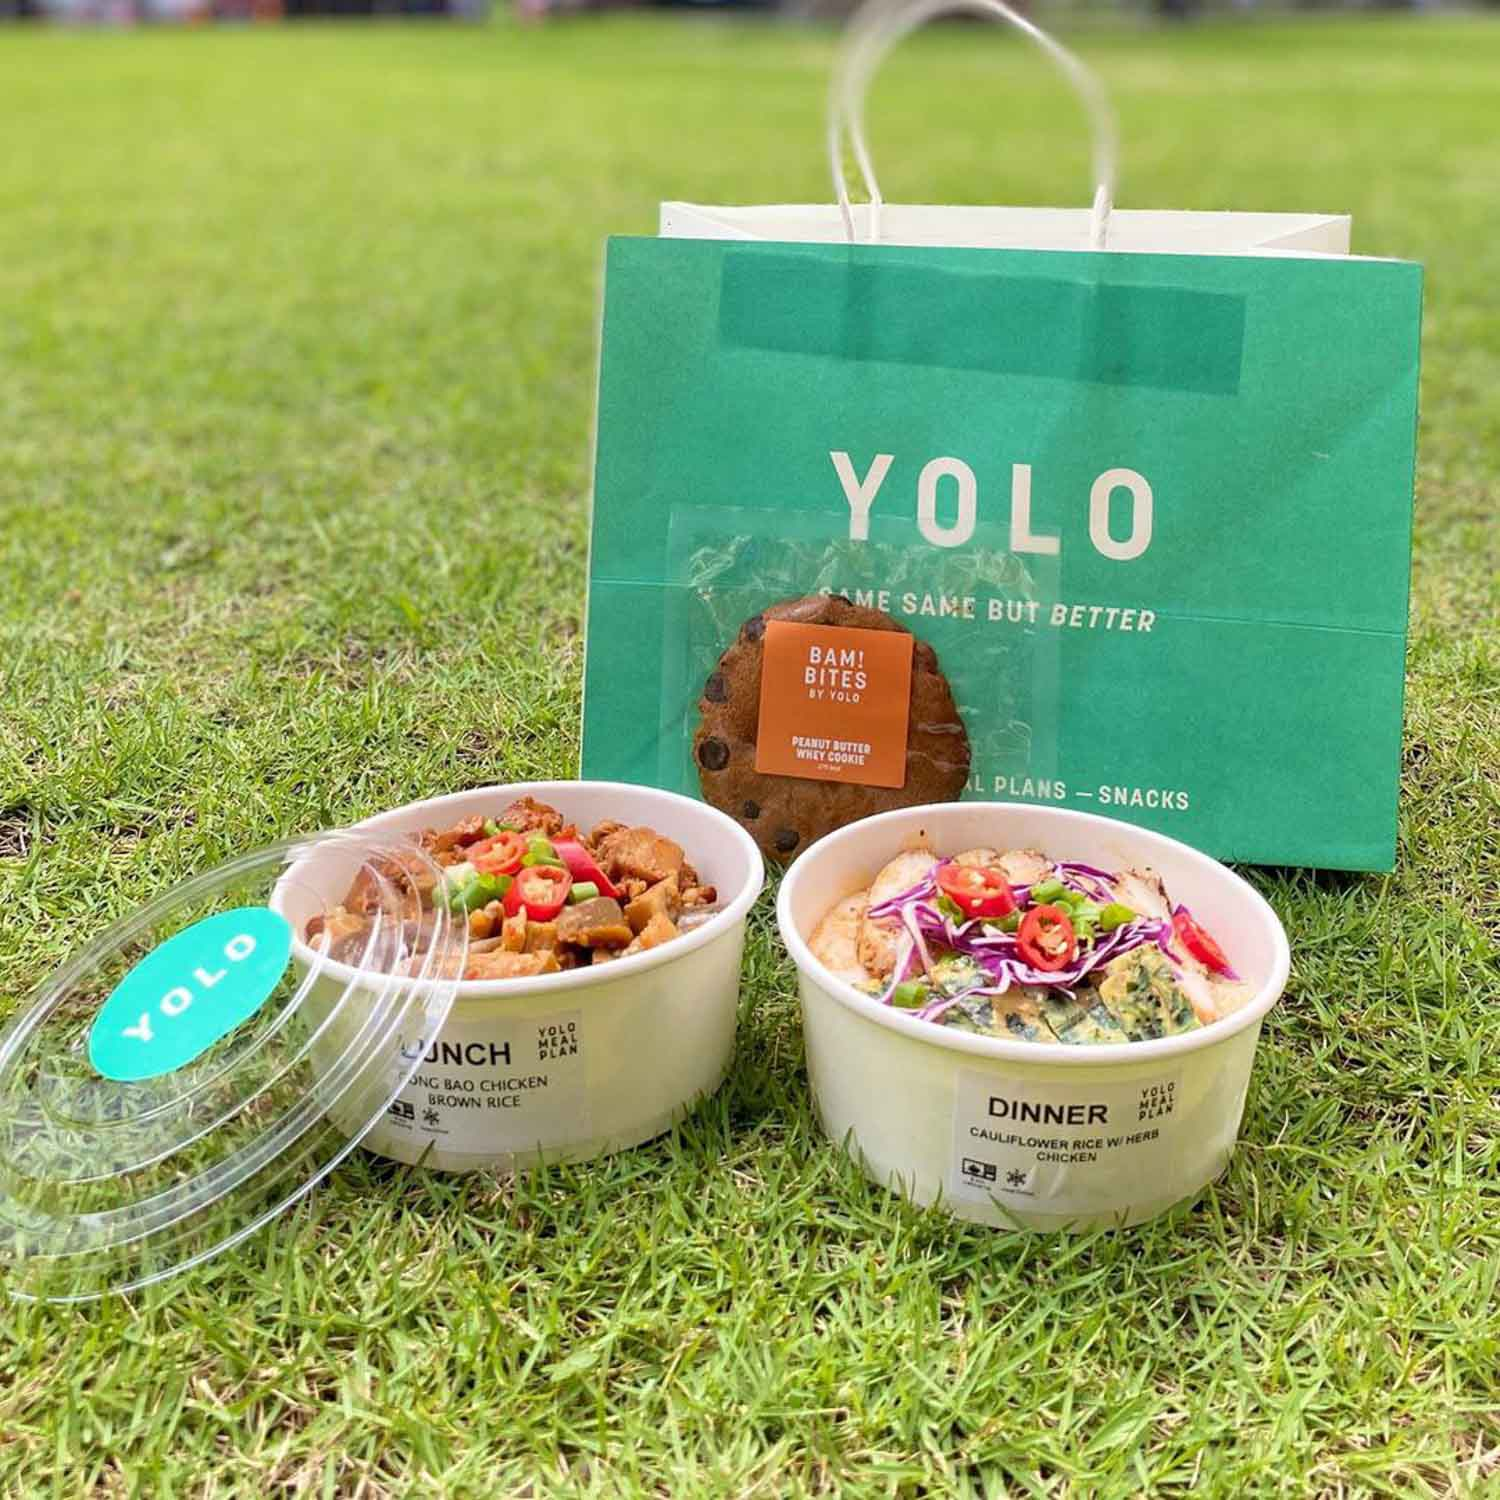 15 Healthy Food Delivery Services During Circuit Breaker For Mentaiko Poke Bowls Acai And More Eatbook Sg New Singapore Restaurant And Street Food Ideas Recommendations